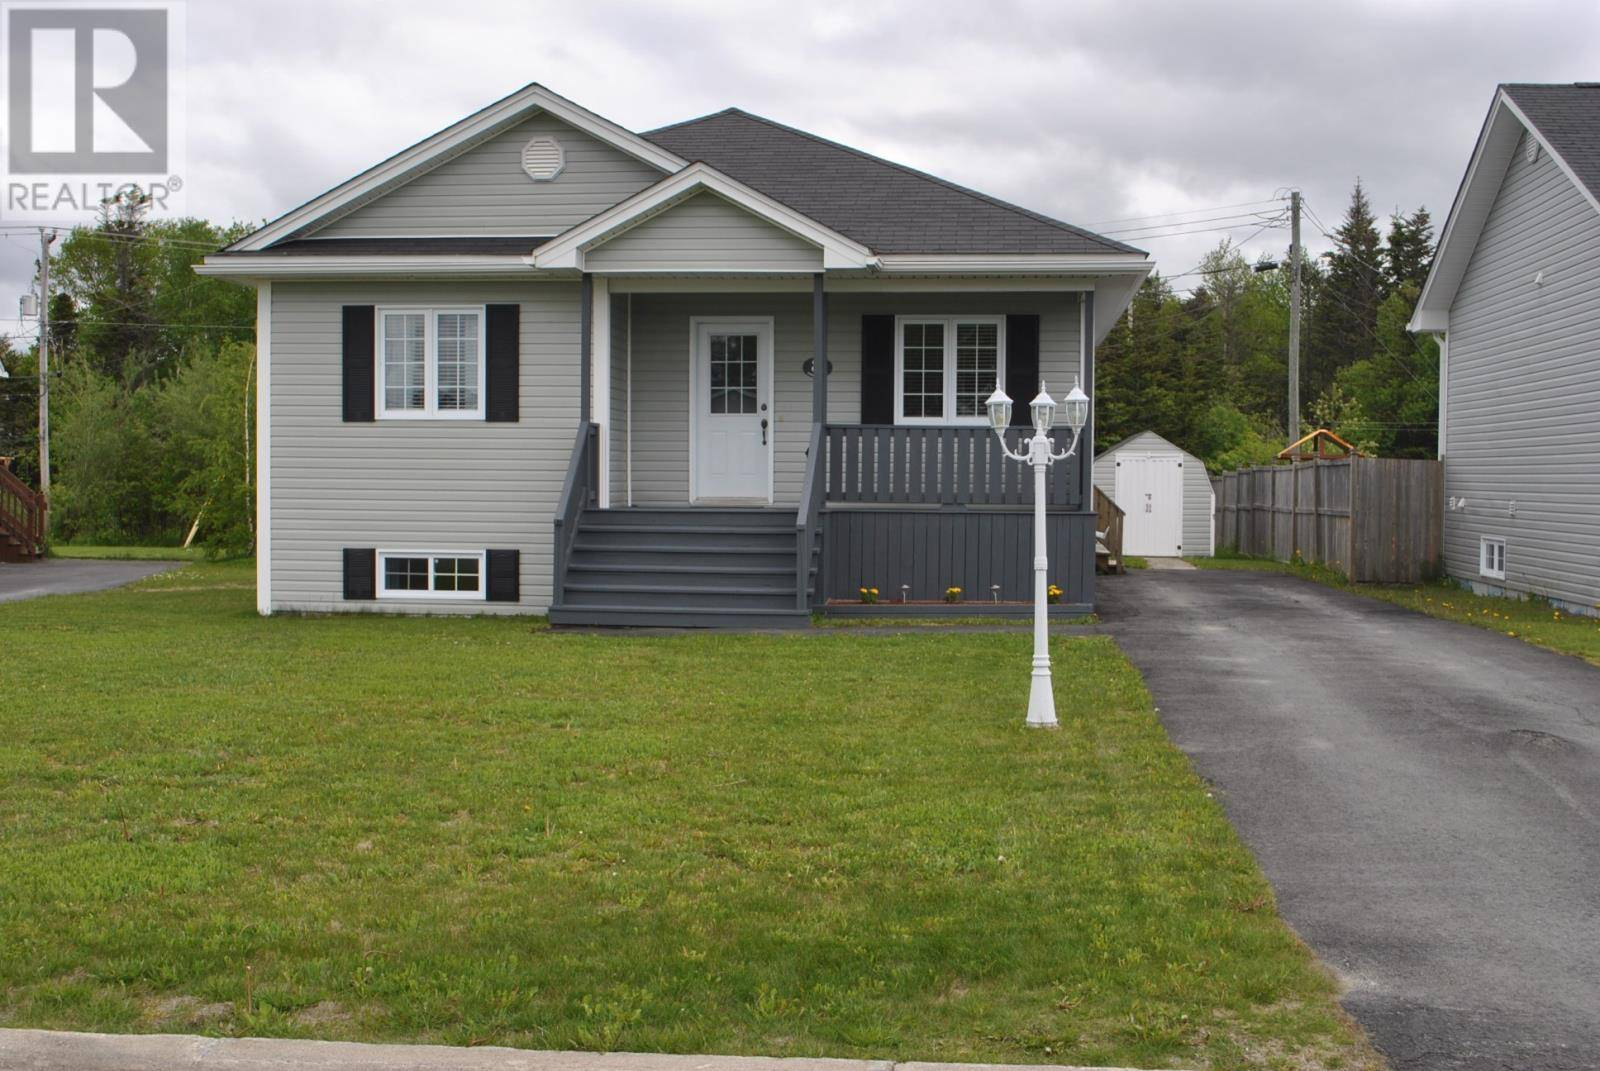 House for sale at 8 Cayley Pl Gander Newfoundland - MLS: 1209859